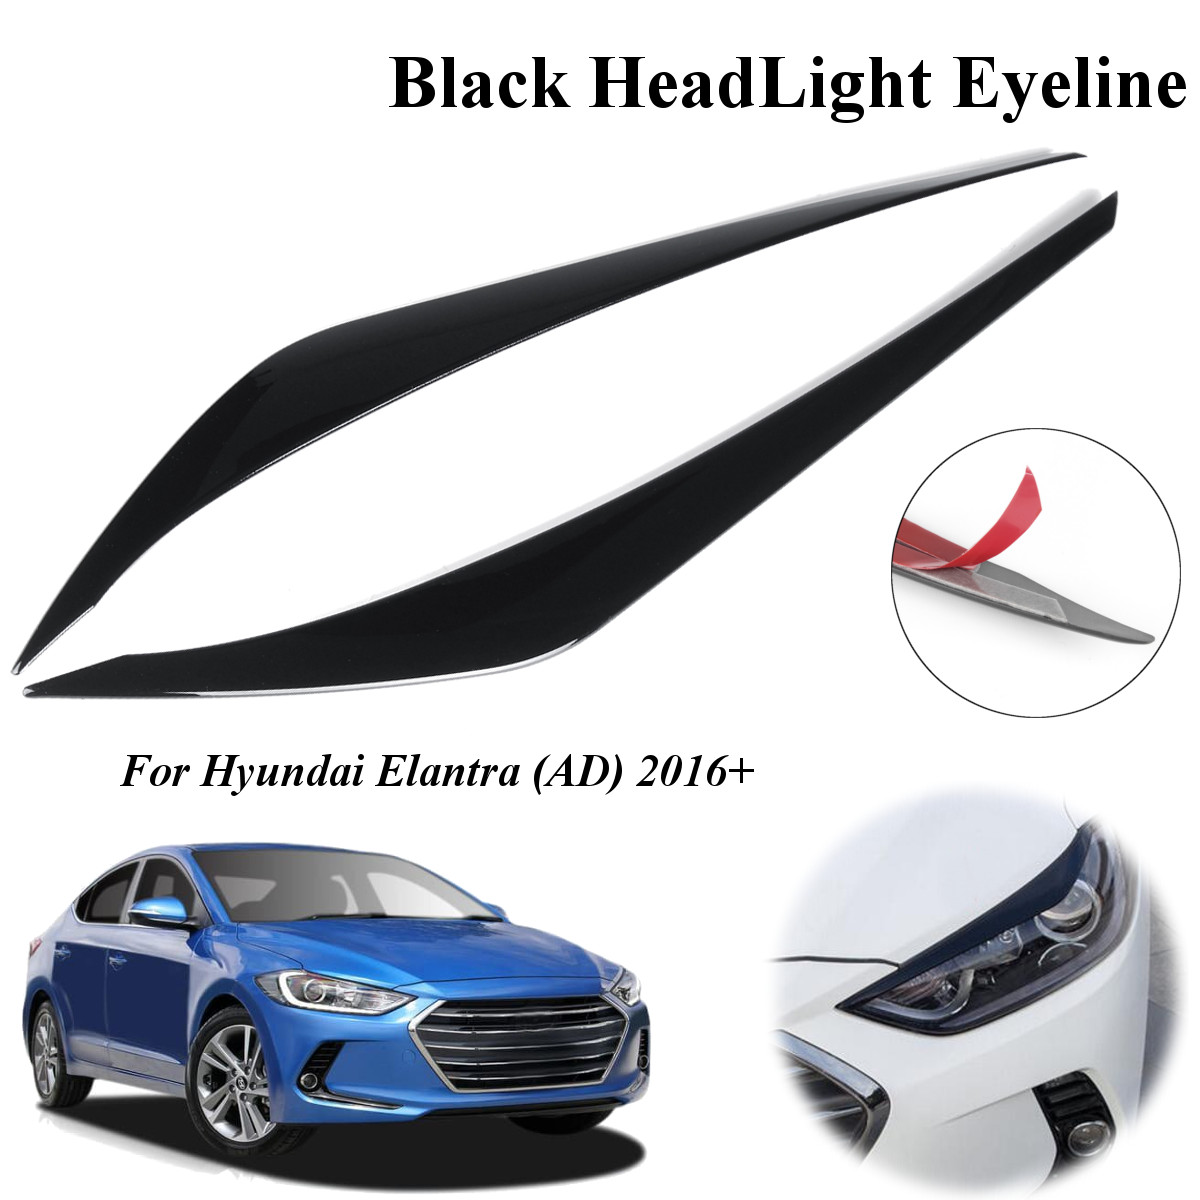 Pair car headlight eyeline point molding abs decoration trim cover for hyundai elantra ad 2016 2017